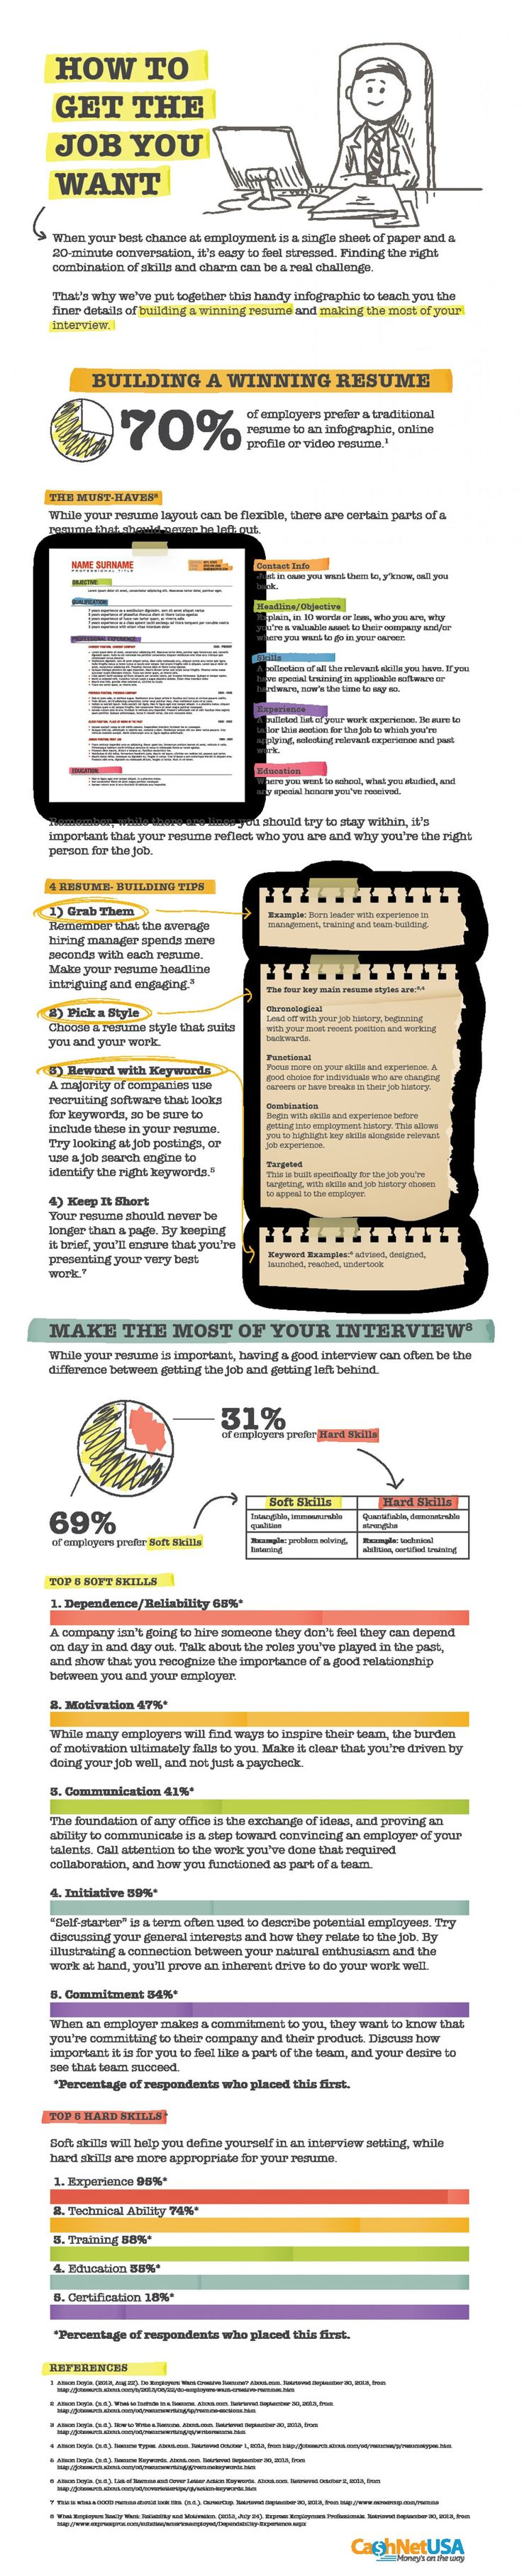 Tips for creating an effective resume and interviewing well #Infographic